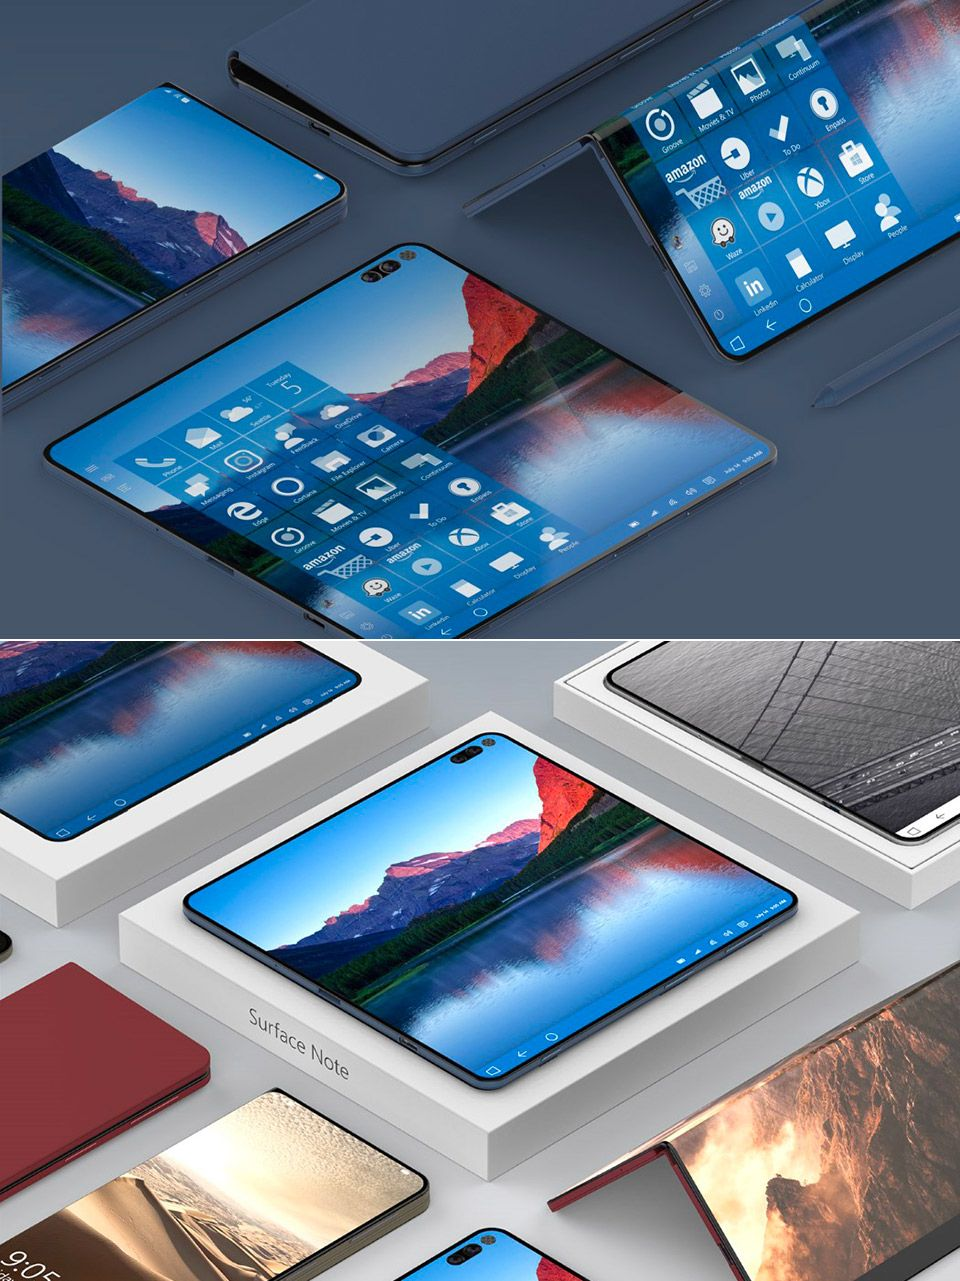 If folding smartphones ran Windows, this is how it would